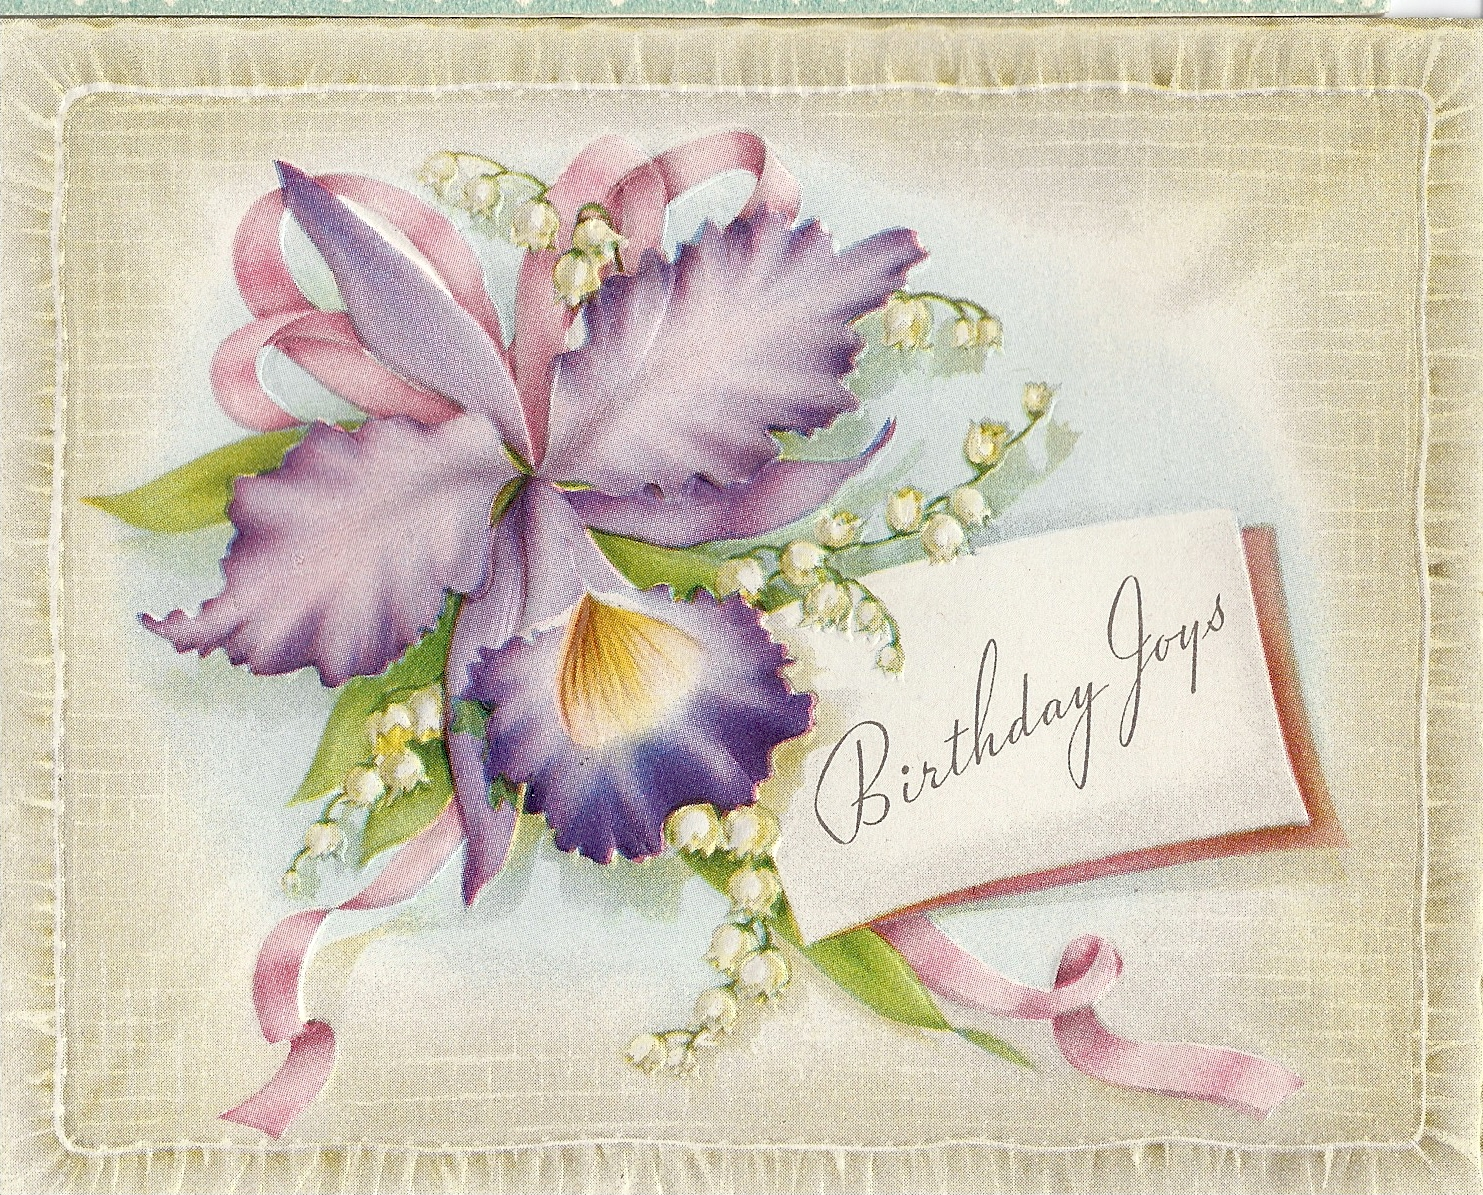 Waxing and waning the cousin connection june 1943 birthday cards june 1943 birthday cards izmirmasajfo Images